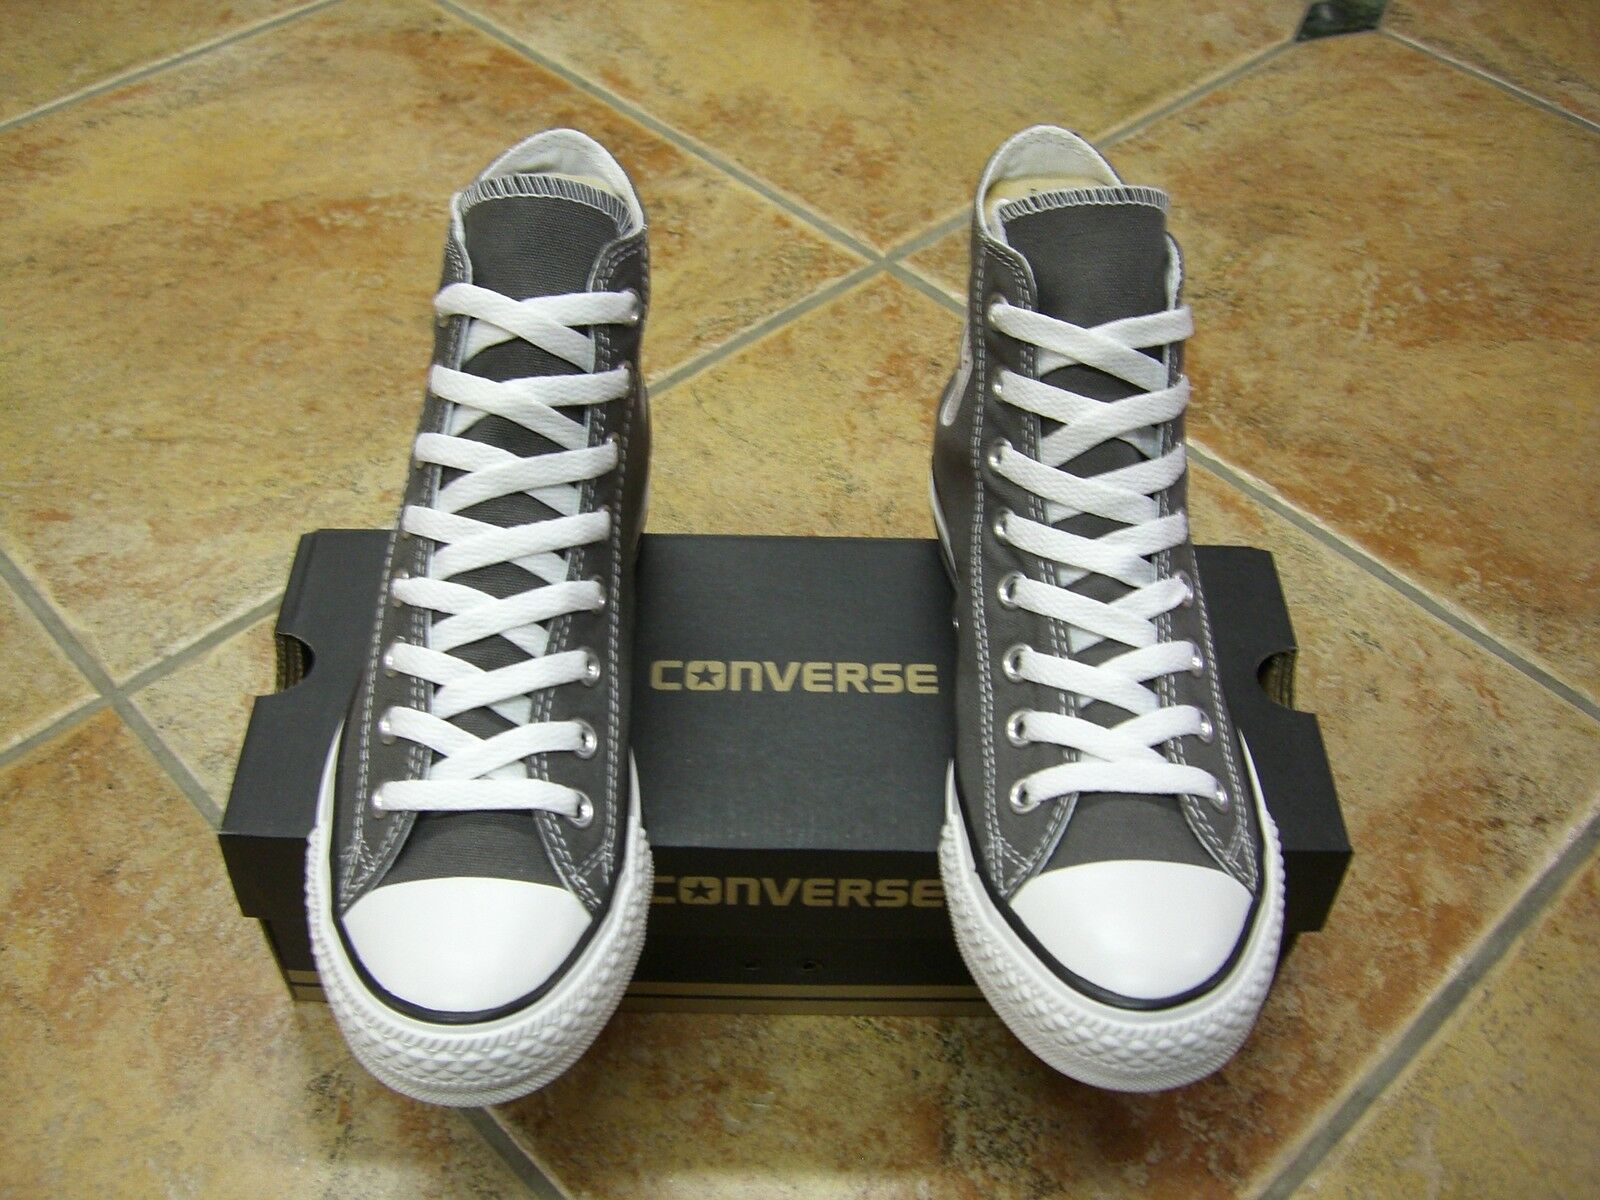 Converse Chucks All Star HI Größe 44 charcoal 1J793C Neu Sneaker